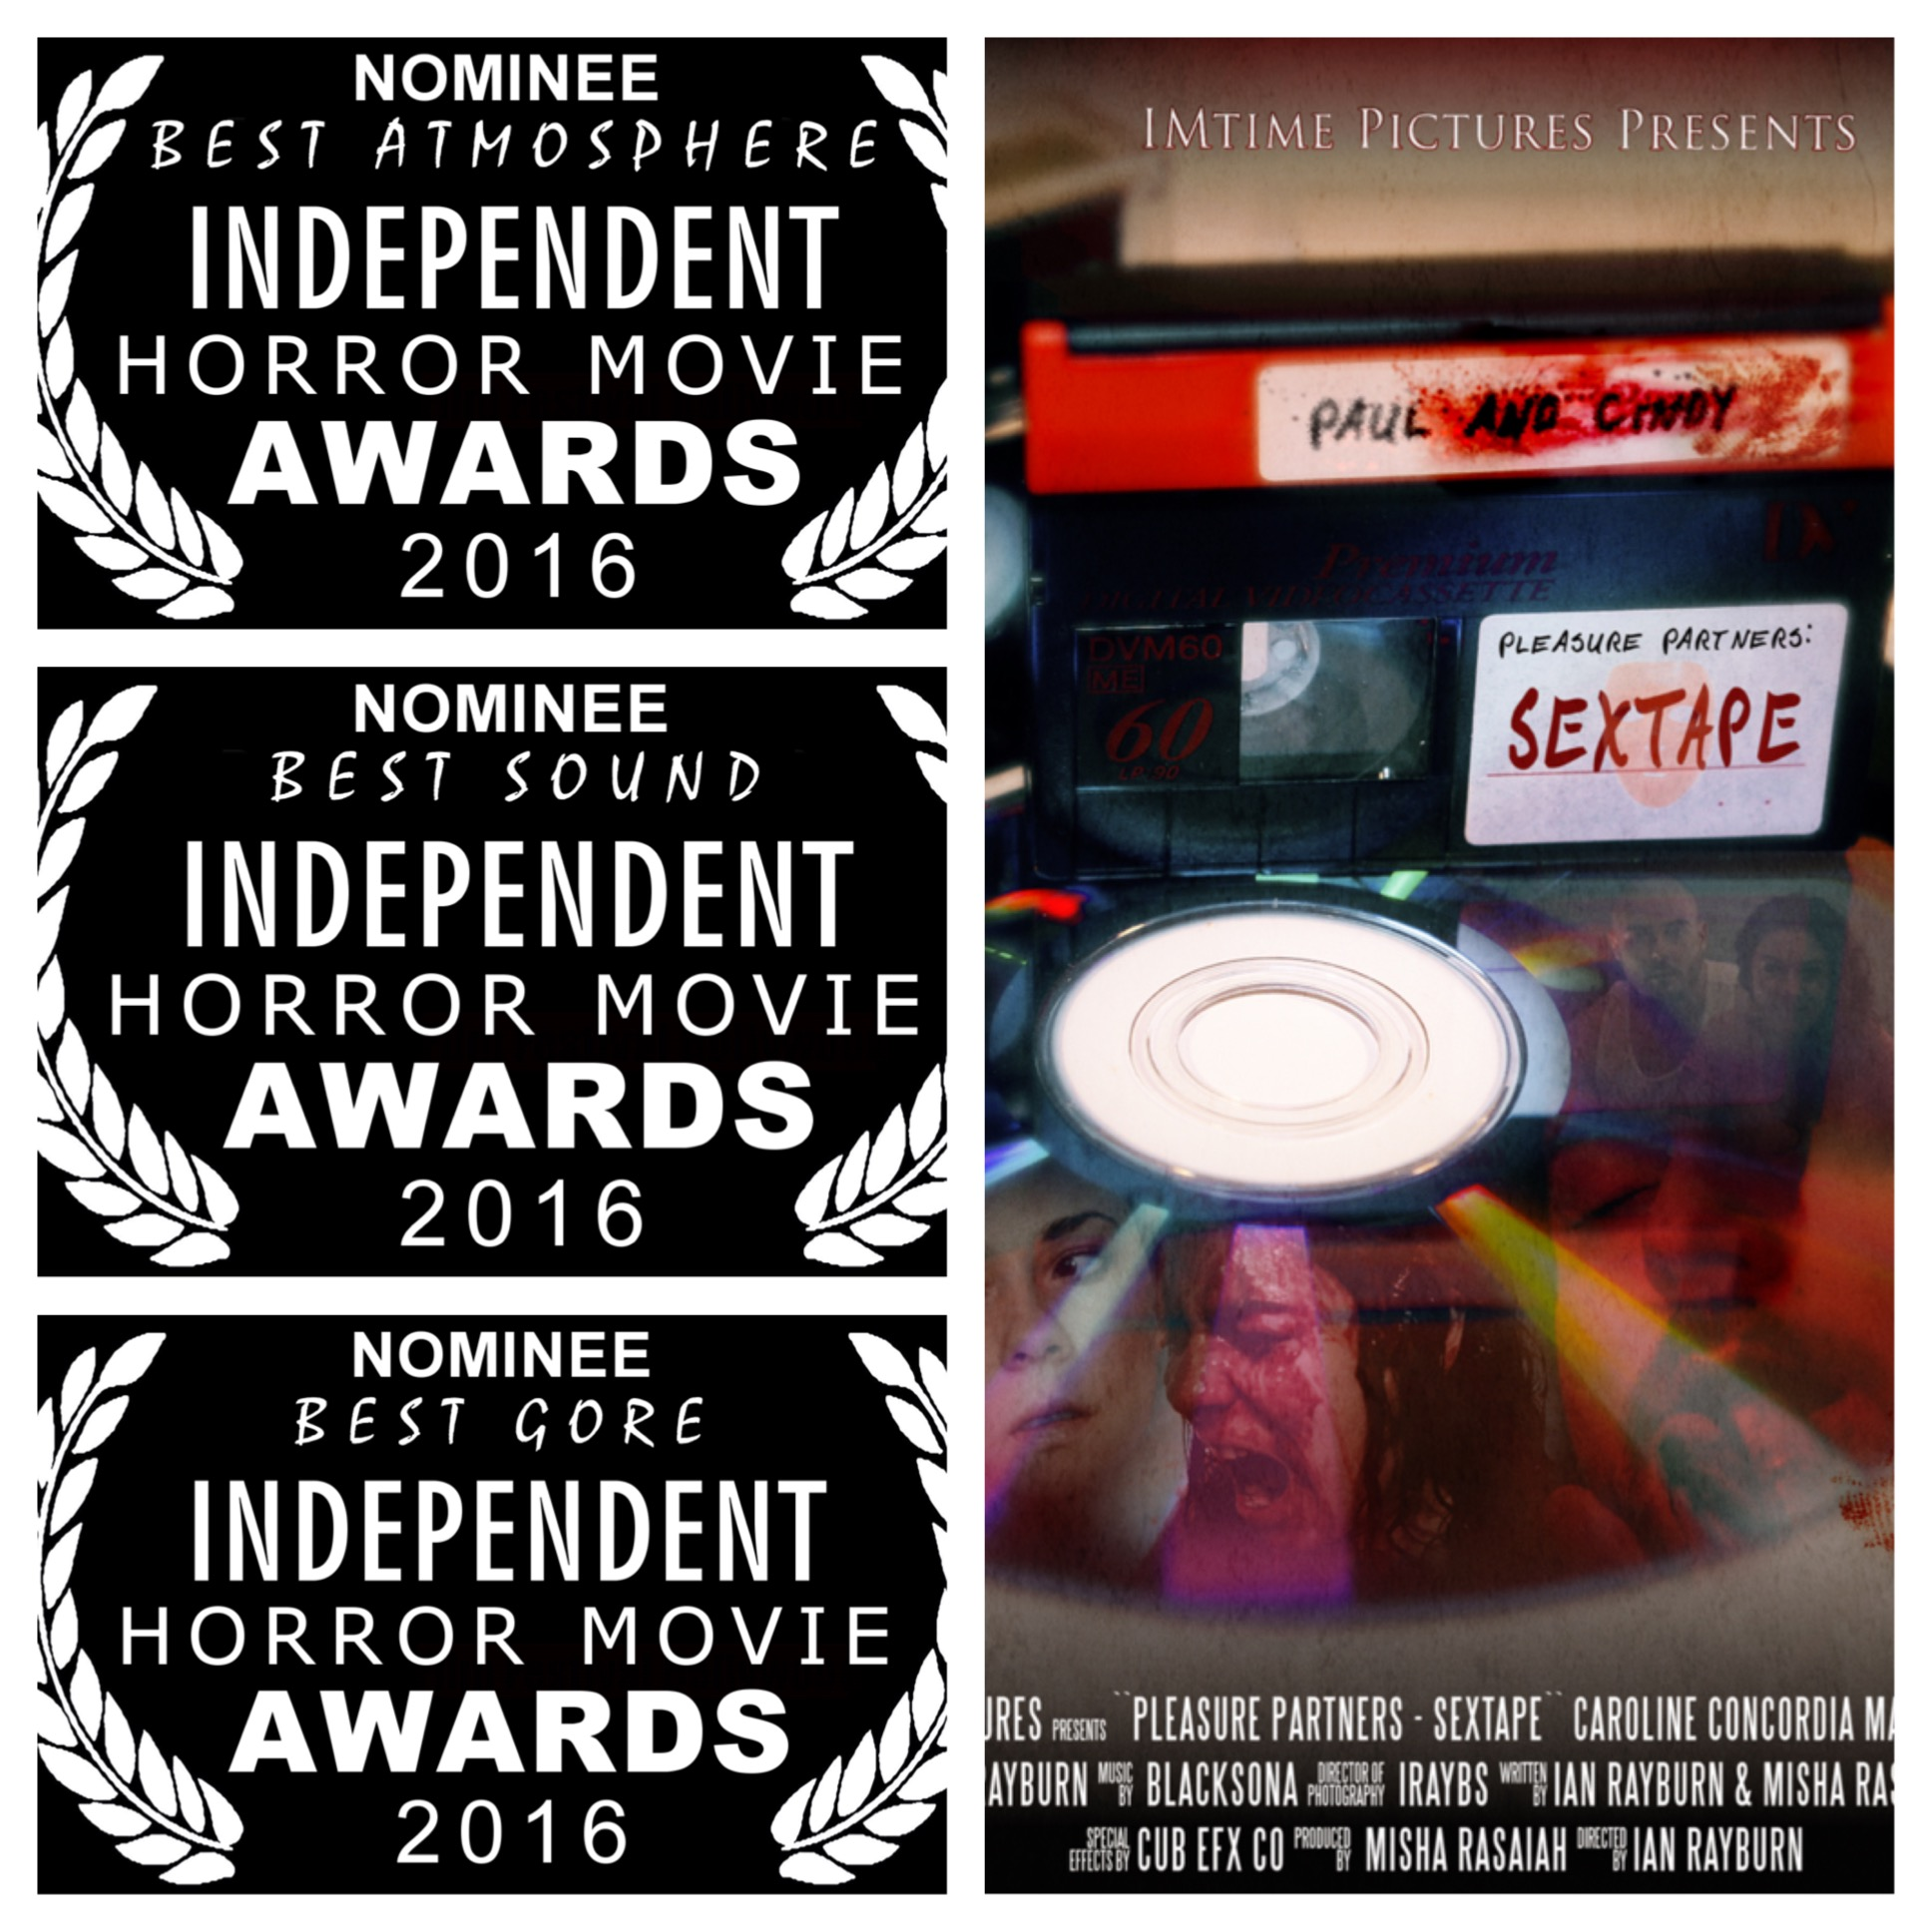 """SEXTAPE was a NOMINEE for 3 awards at the """"independent Horror Movie Awards""""  -Best Gore, - Best Sound, - Best Atmosphere"""